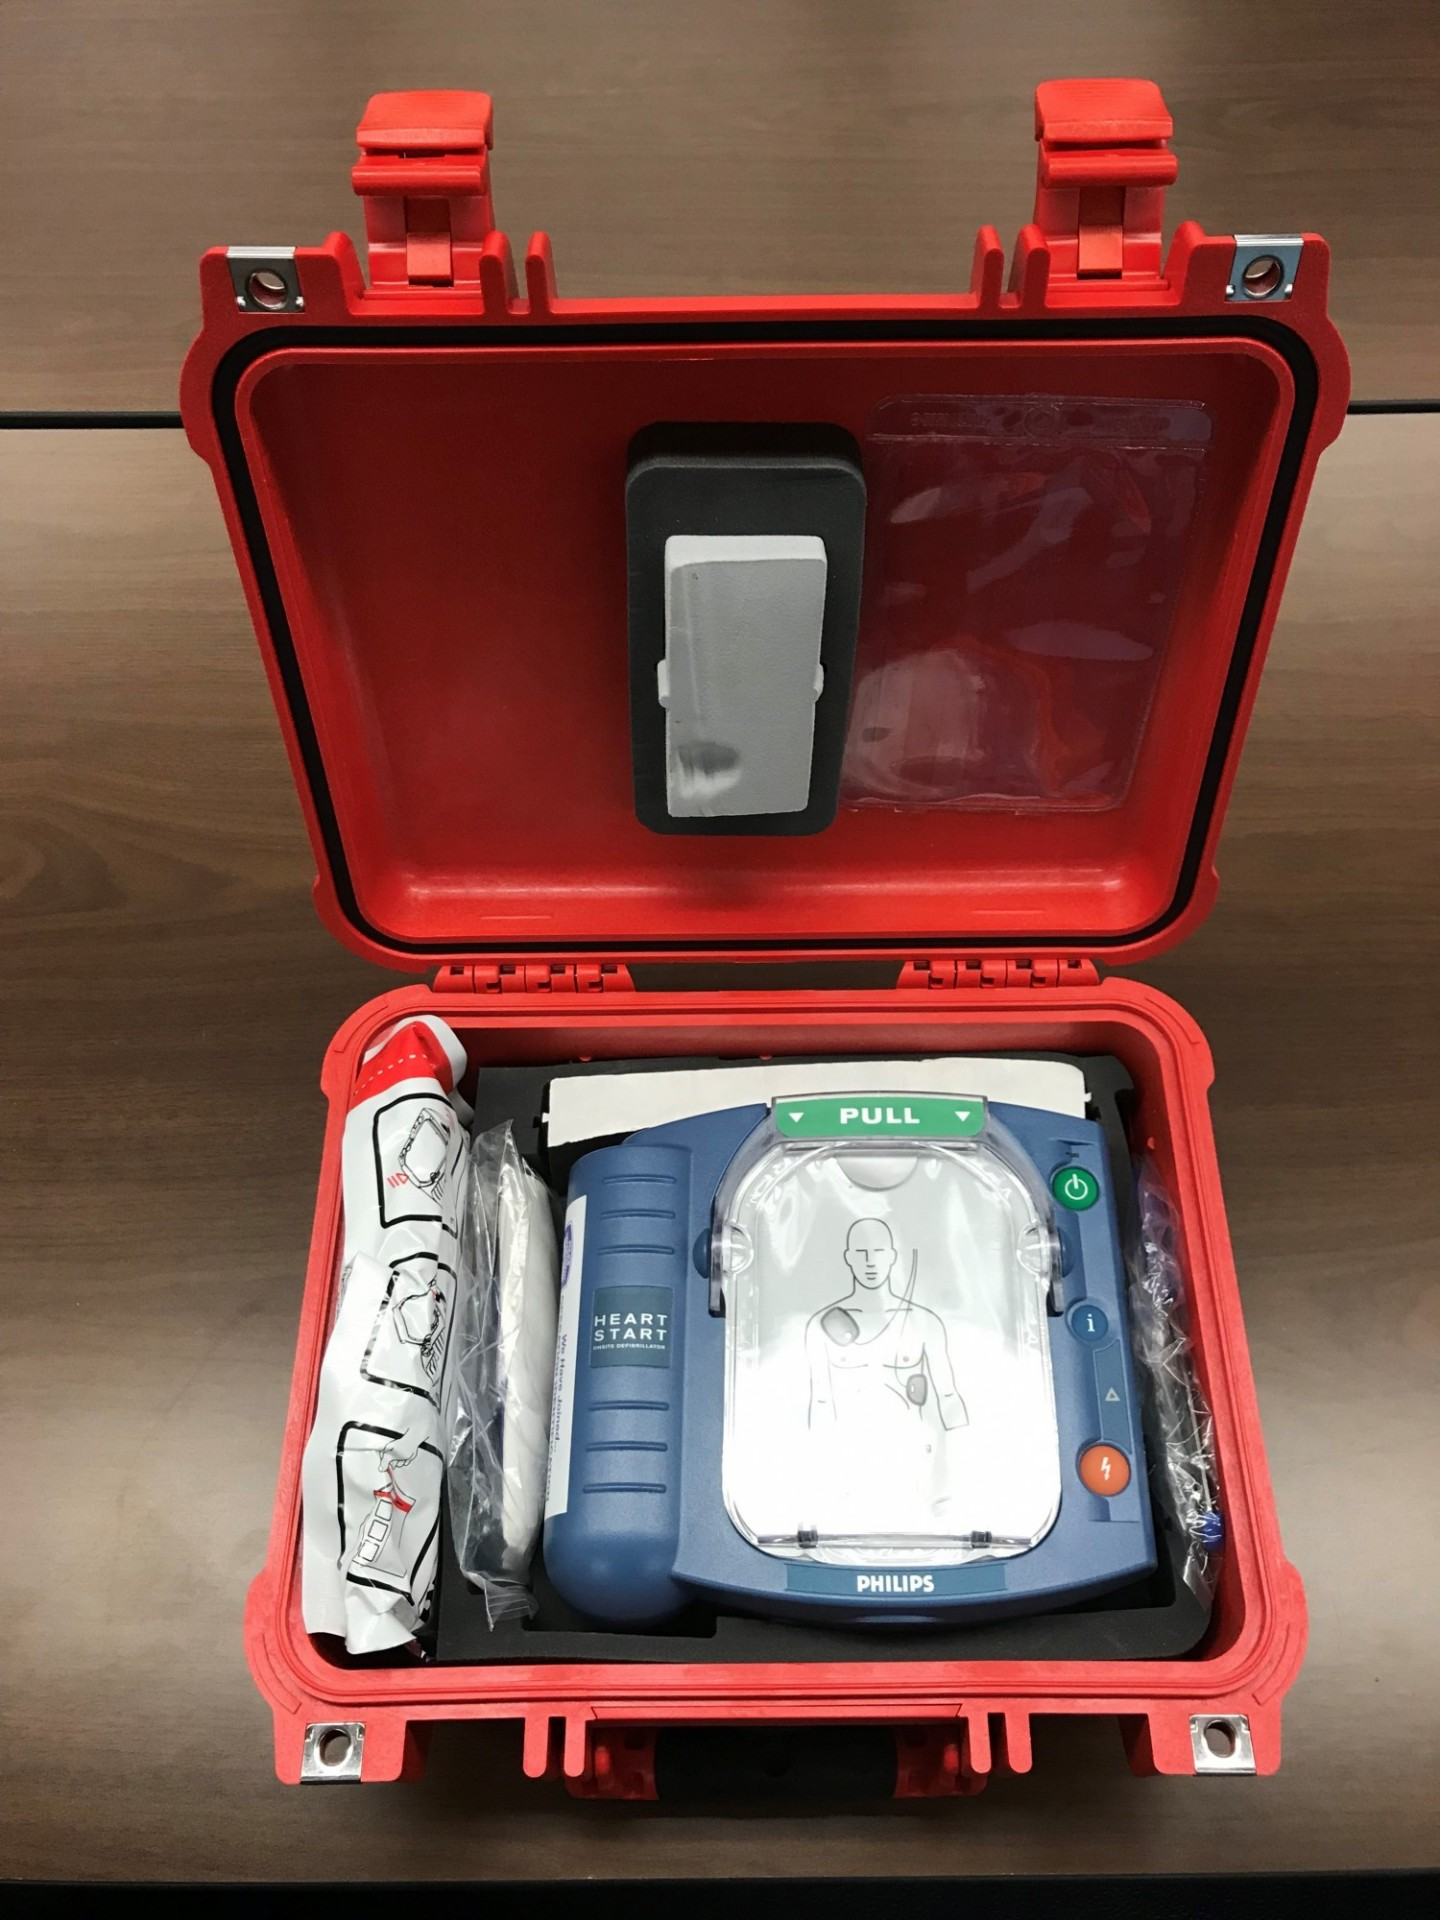 Automated external defibrillators (AEDs) can help save lives on campus in the event of cardiac health emergencies